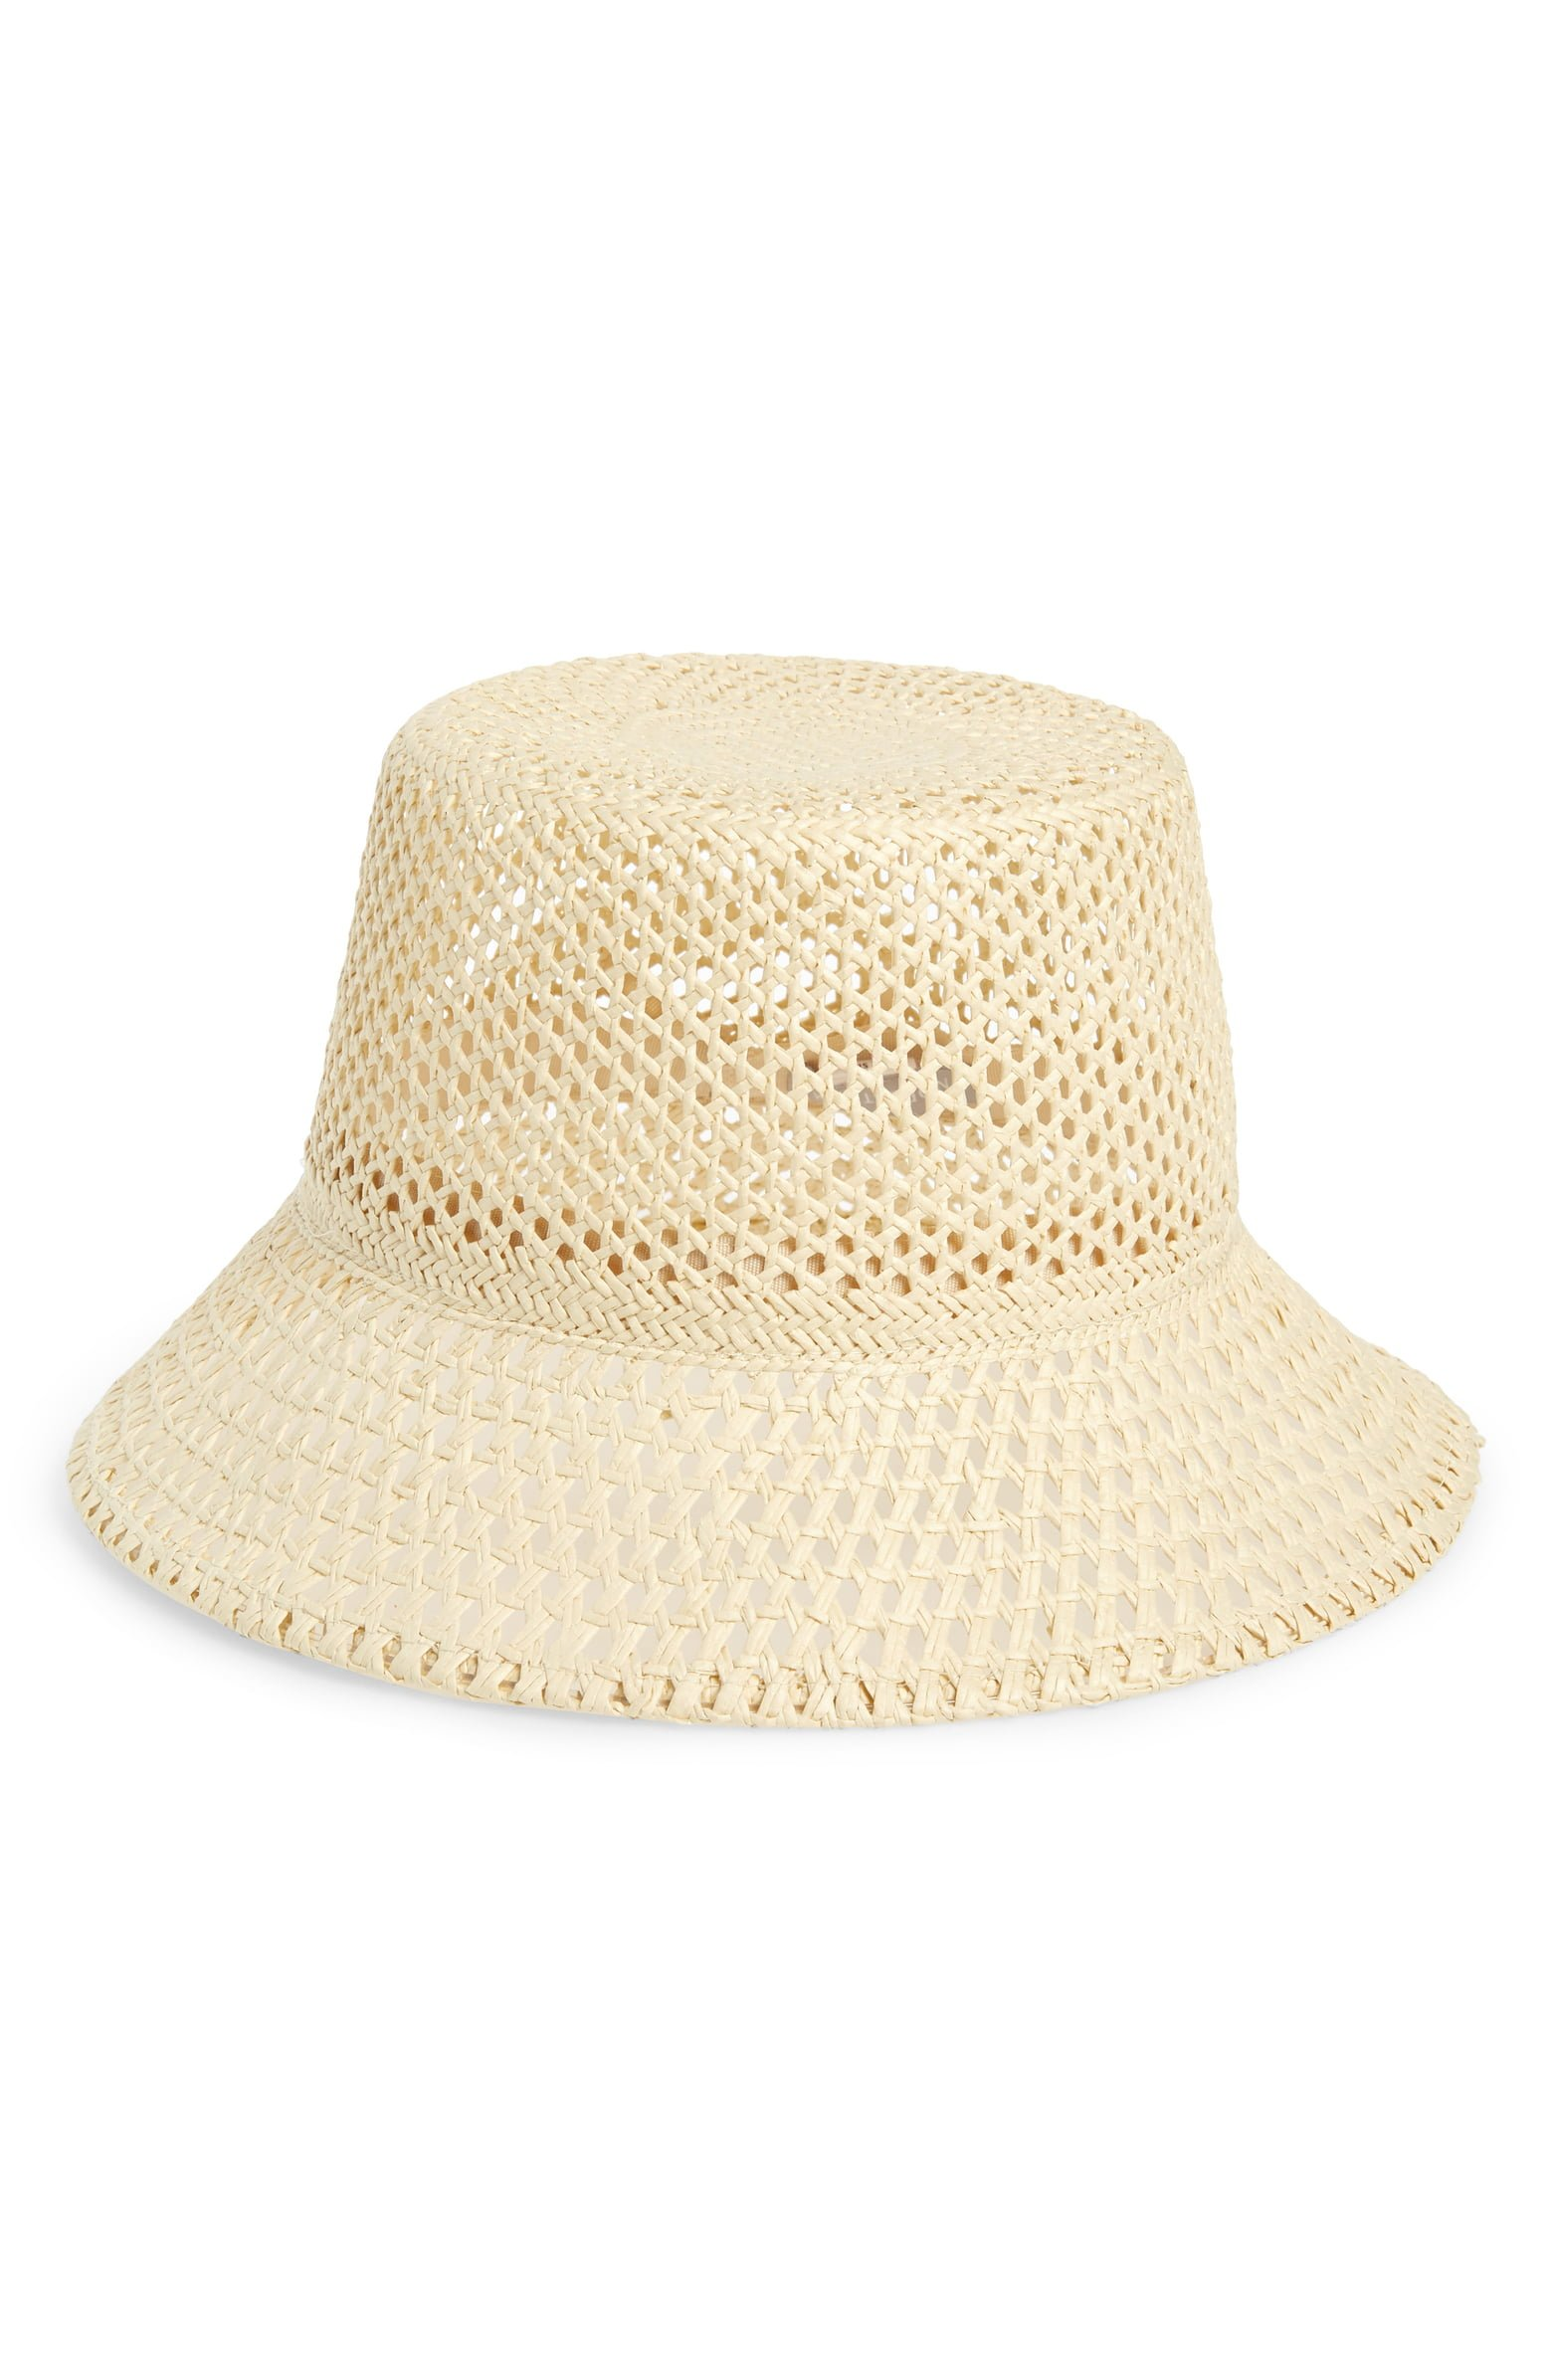 hottest summer trends bucket hat